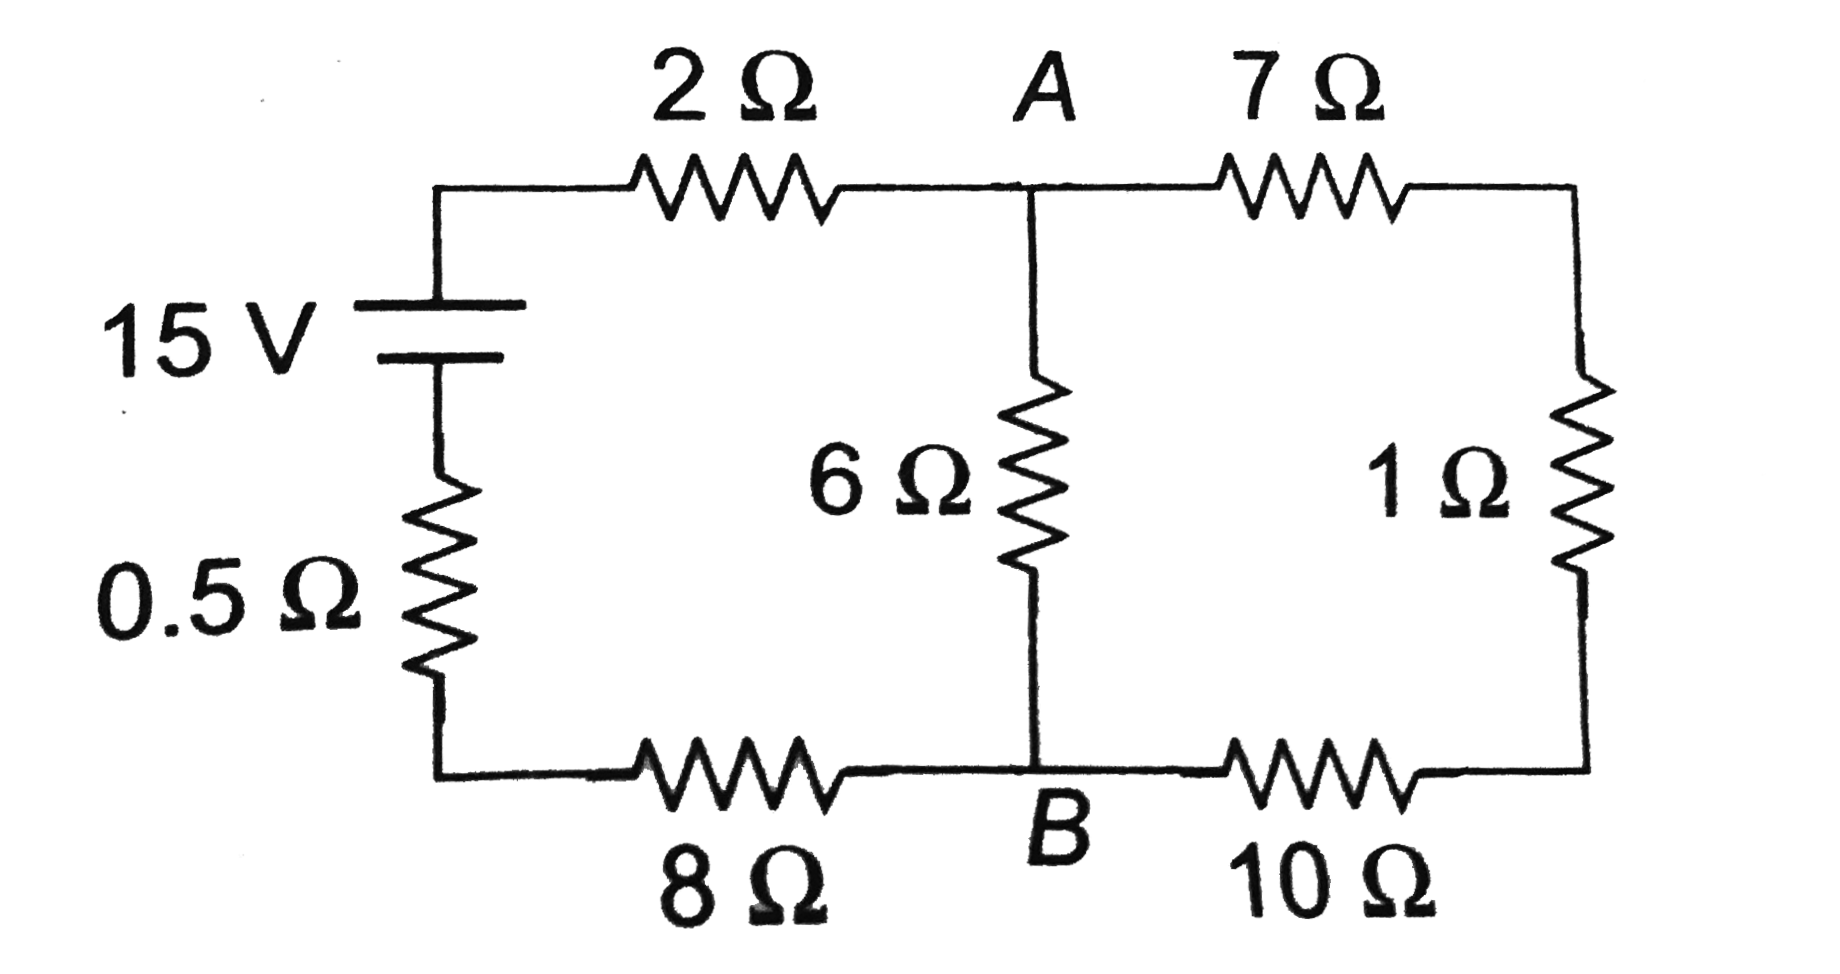 battery circuit diagram the current from the battery in circuit diagram shown is  br  img li-ion battery charger circuit diagram battery in circuit diagram shown